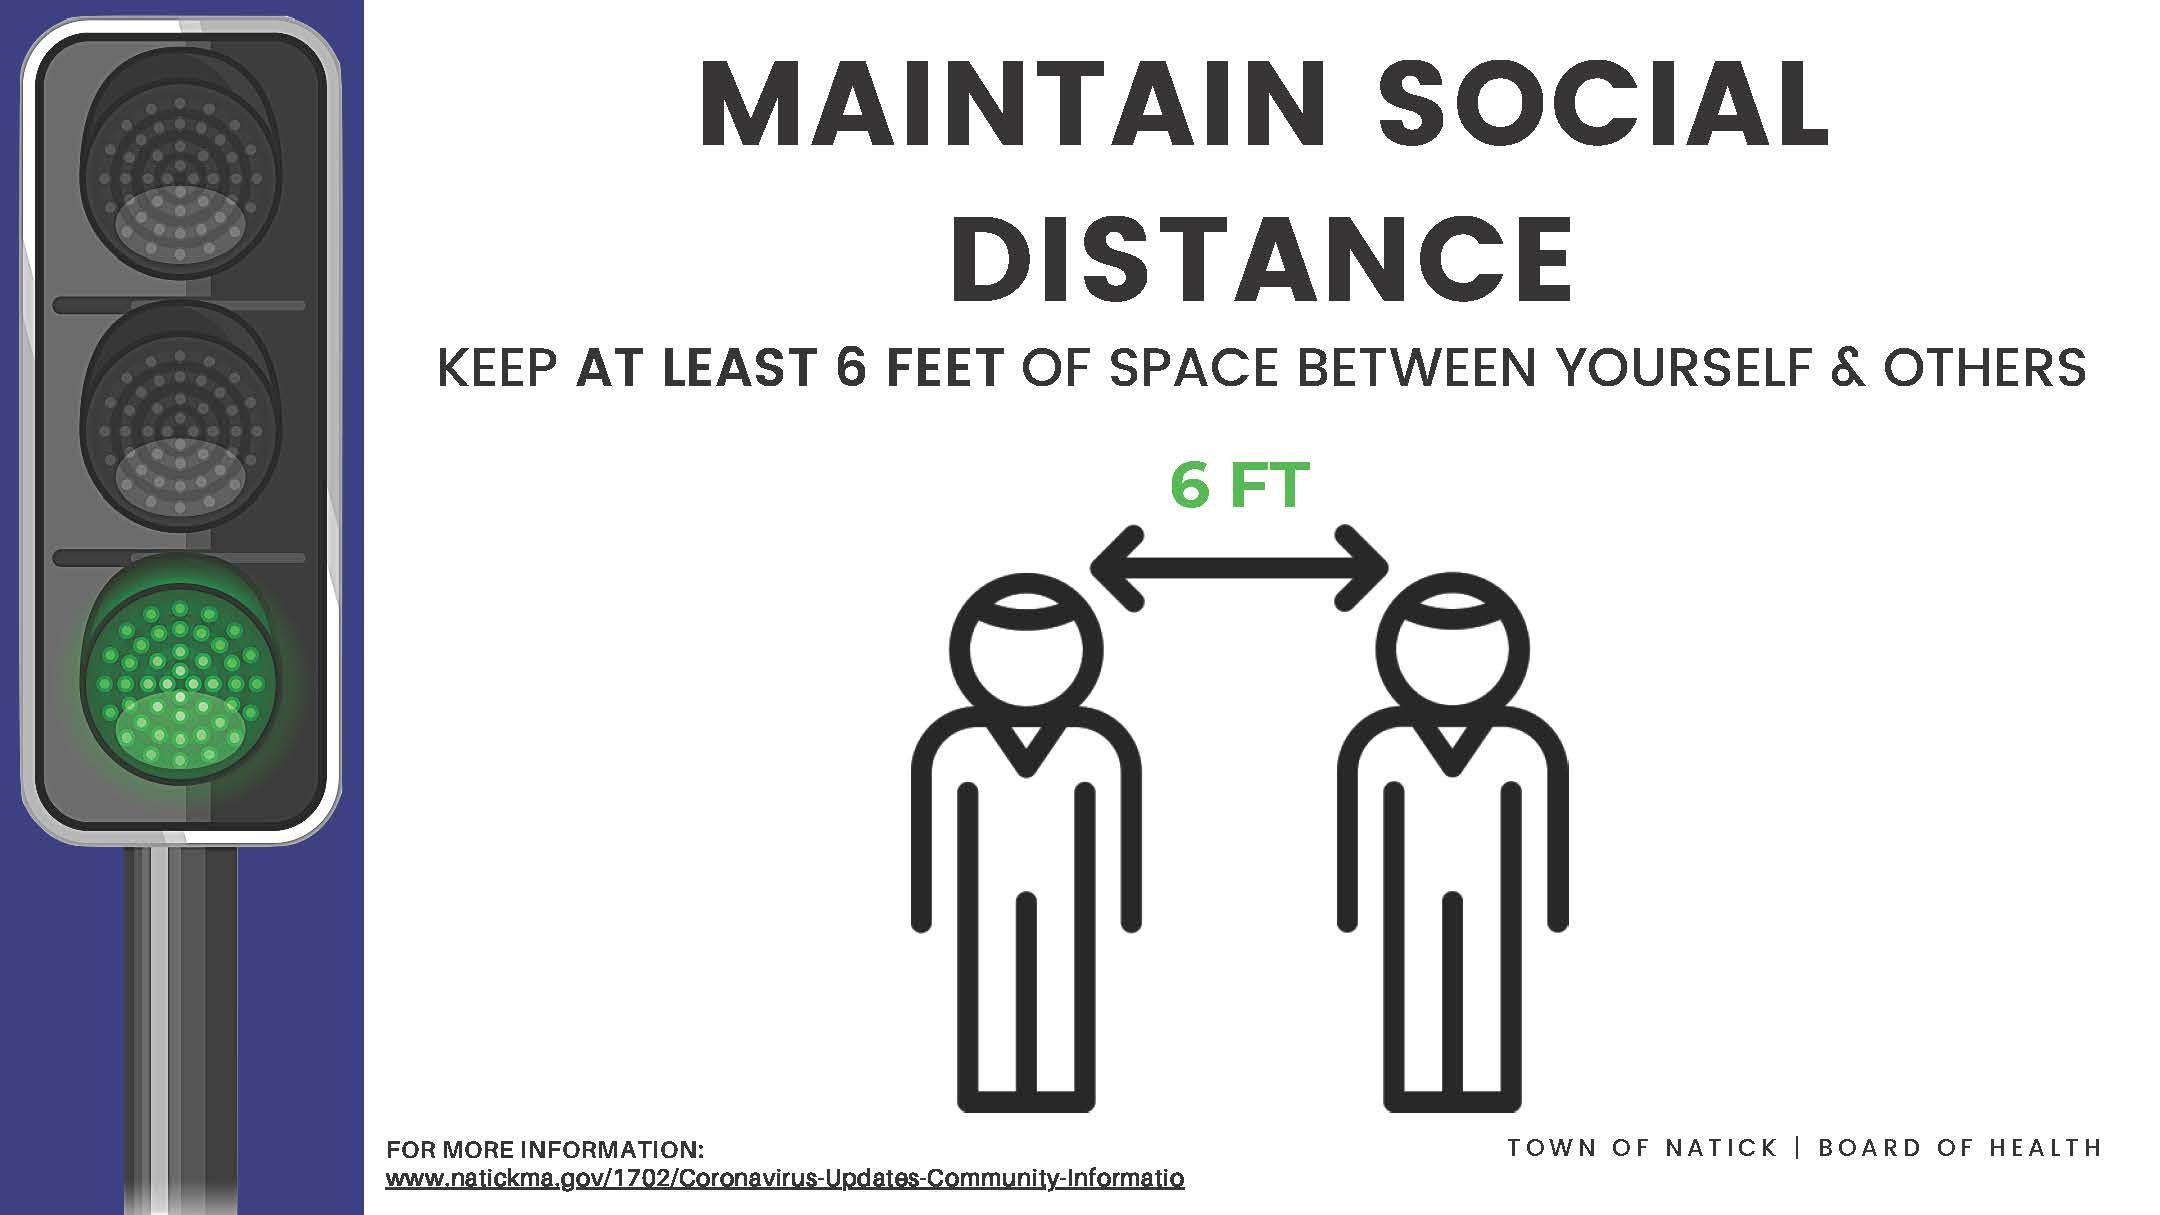 Maintain Social Distance  6 Feet (Corrugated plastic) Outdoor Sign